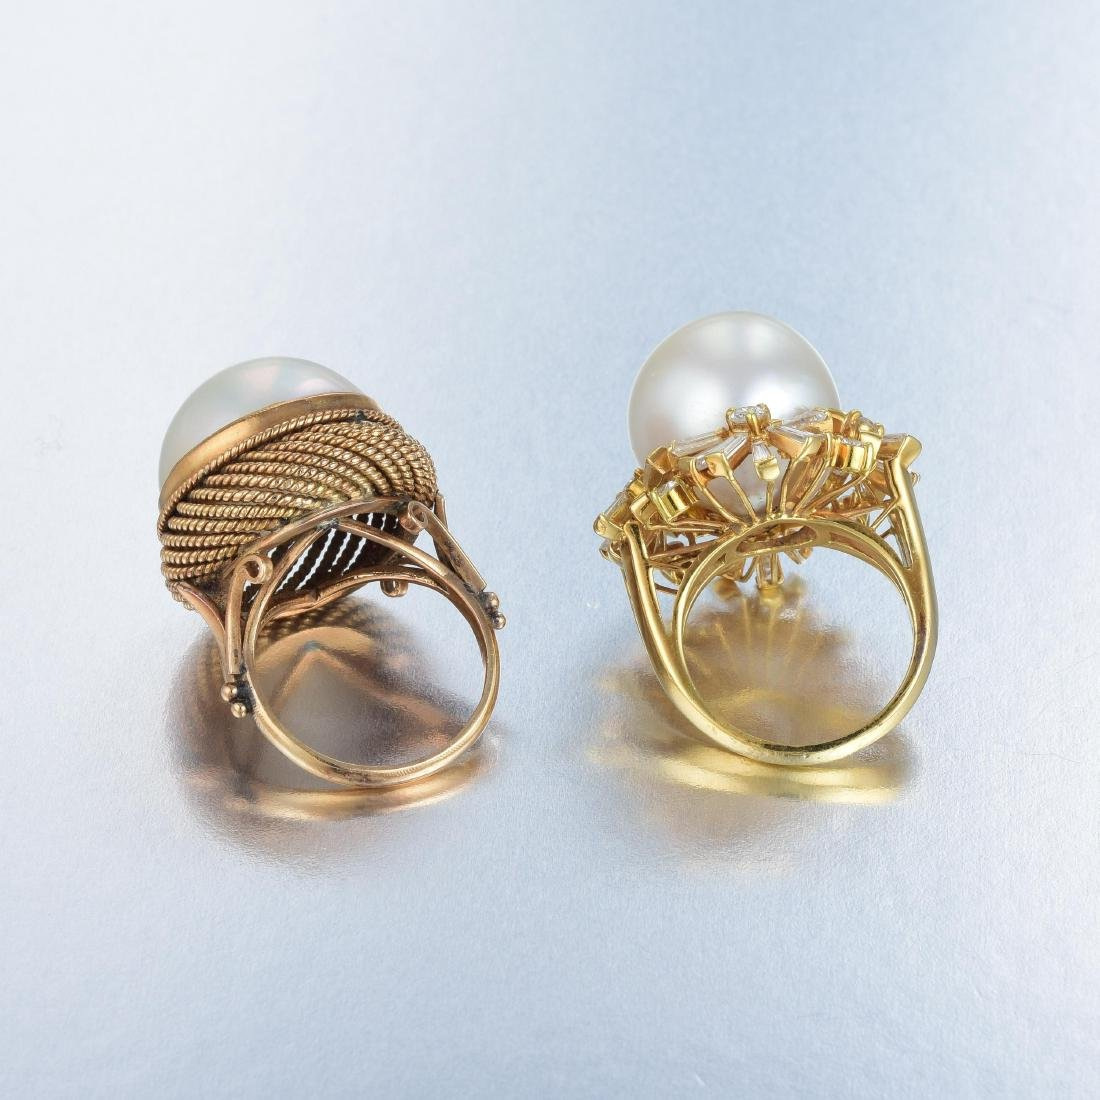 A Lot of Two Pearl and Diamond Rings - 3